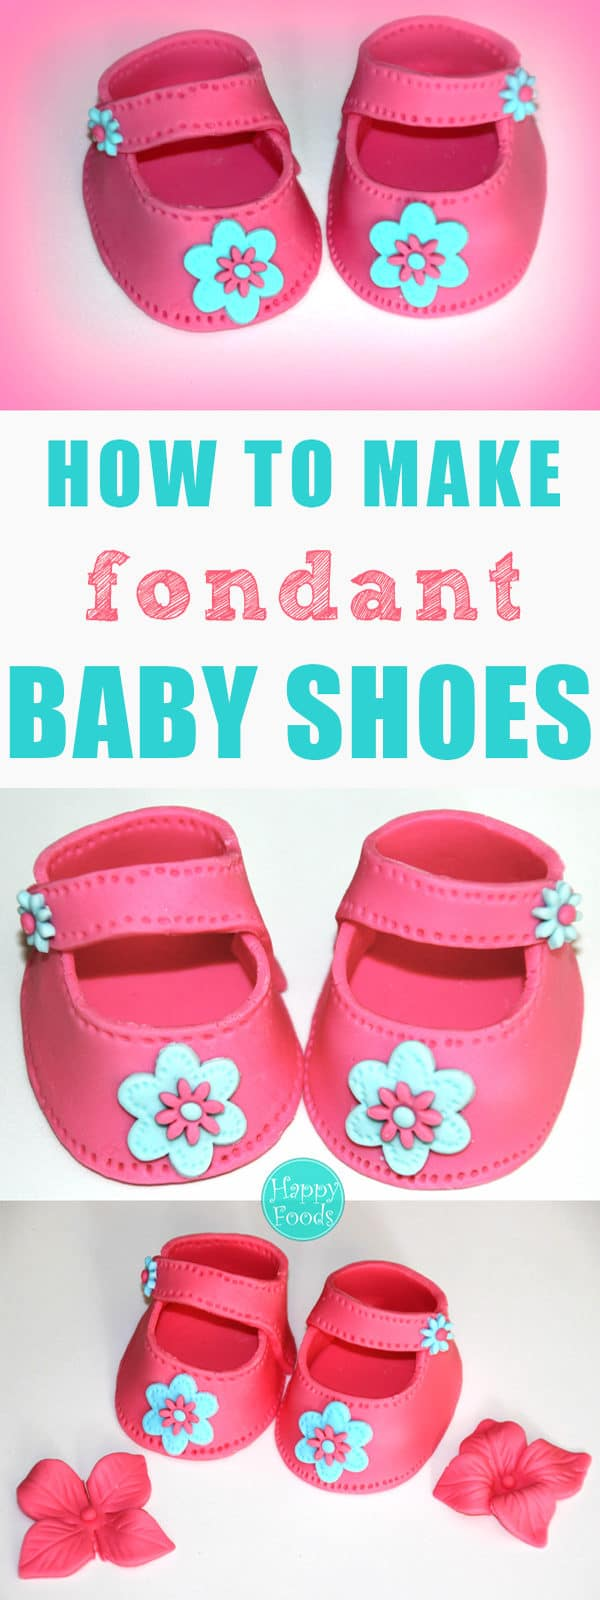 How To Make Fondant Baby Shoes - easy cake decorating tutorial video, baby shower, sugarcraft, sugar paste, fondant icing | happyfoodstube.com